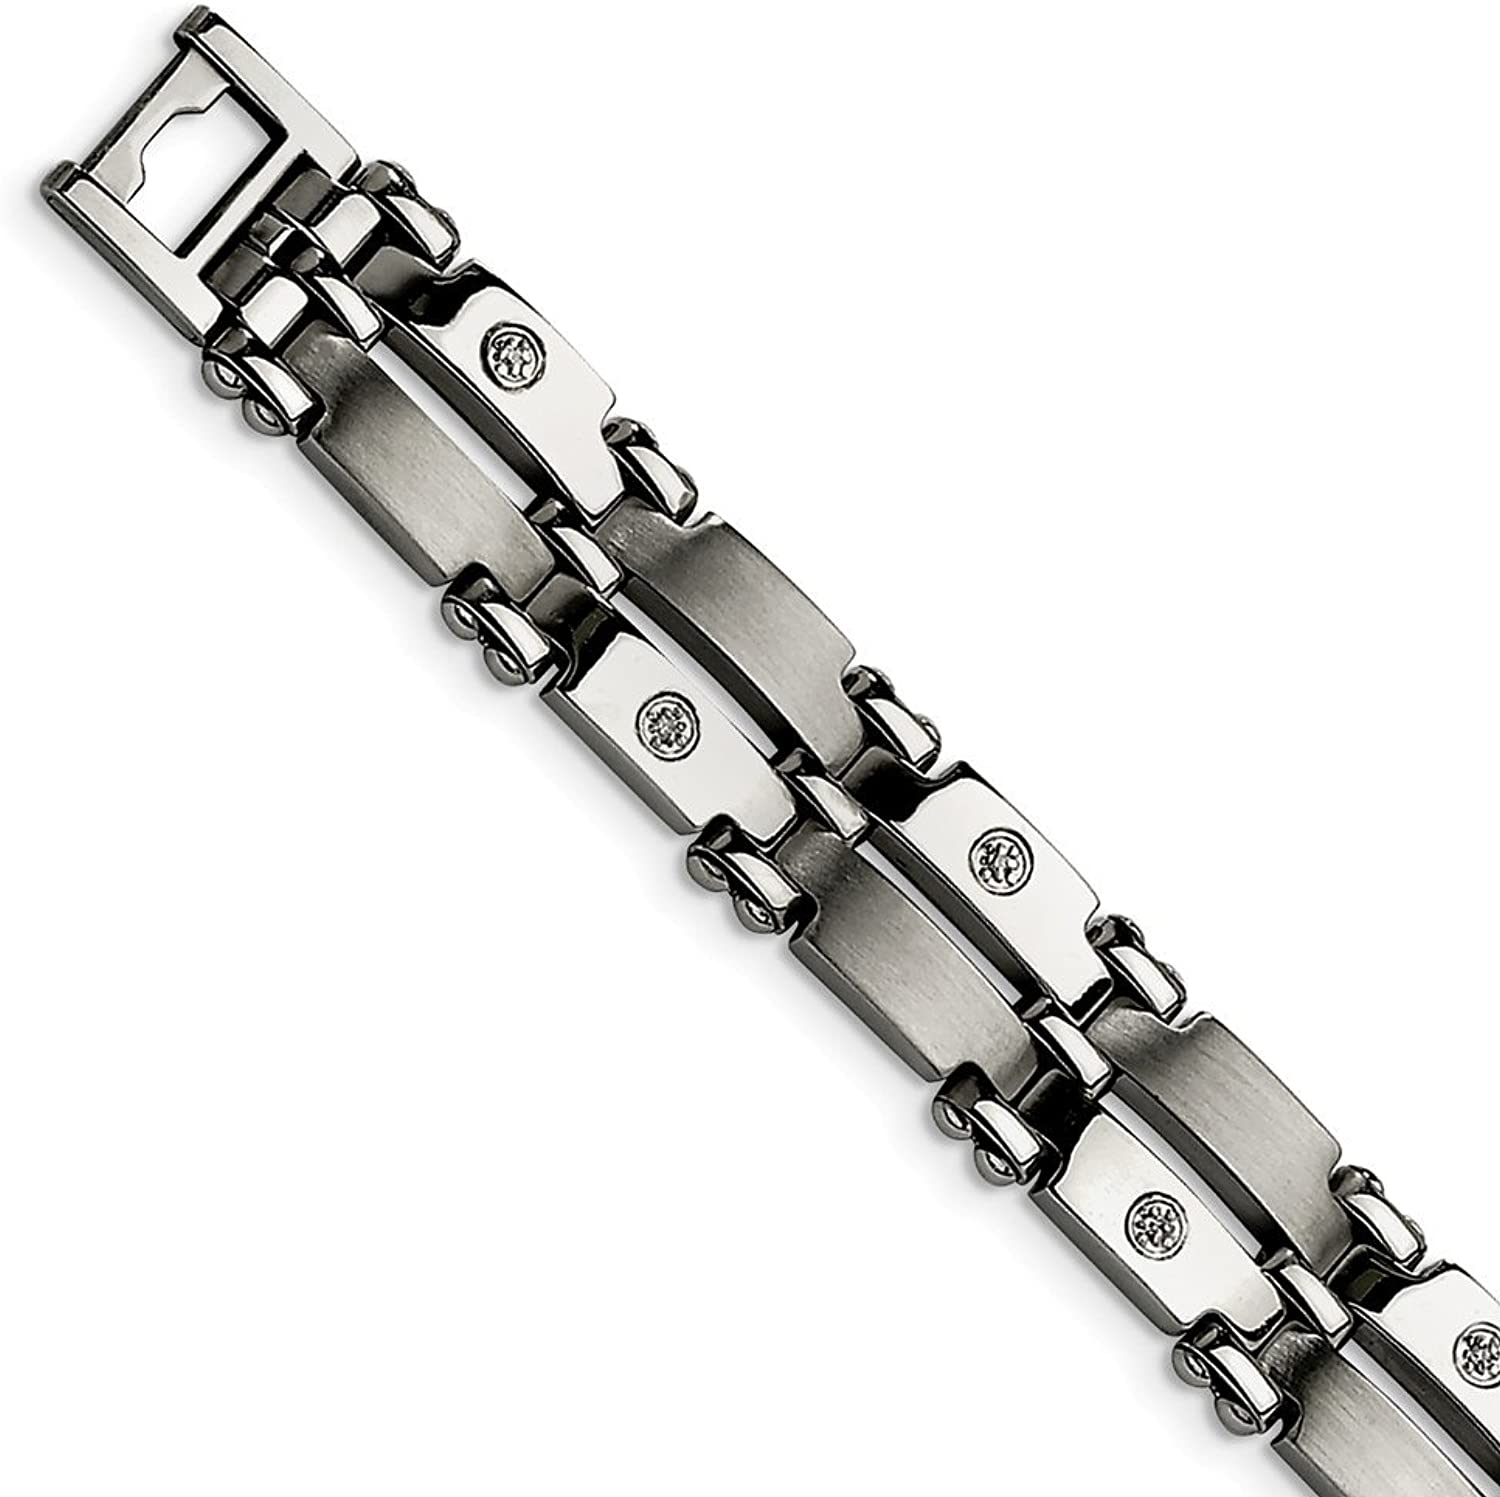 Beautiful Stainless Steel w 14k White gold Accents & Diamonds 8.5in Bracelet